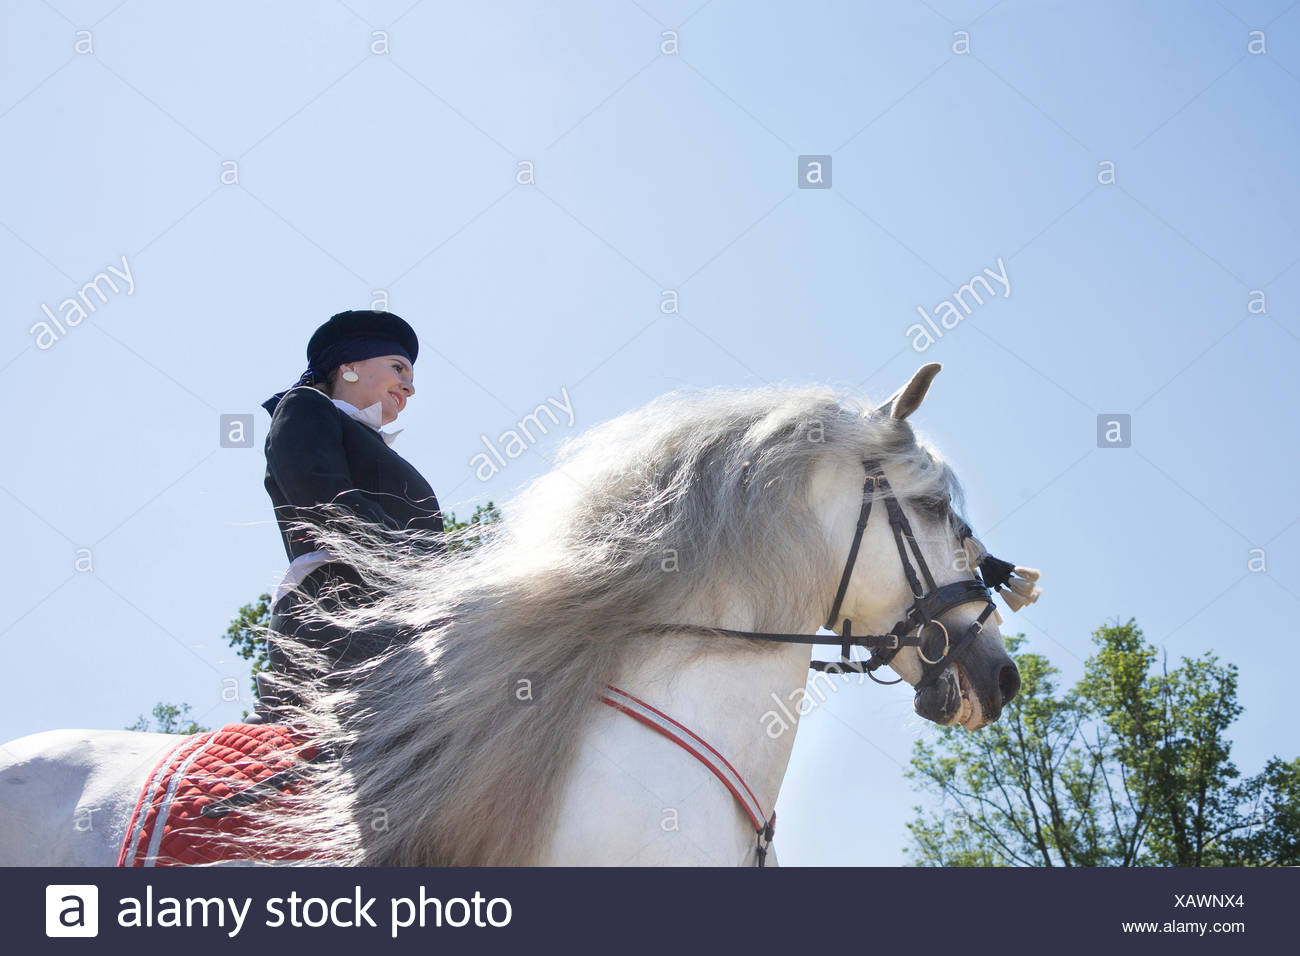 Pure Spanish Horse, Andalusian. Rider in traditional dress on gray stallion galloping on a riding place, senn from below. Austria - Stock Image